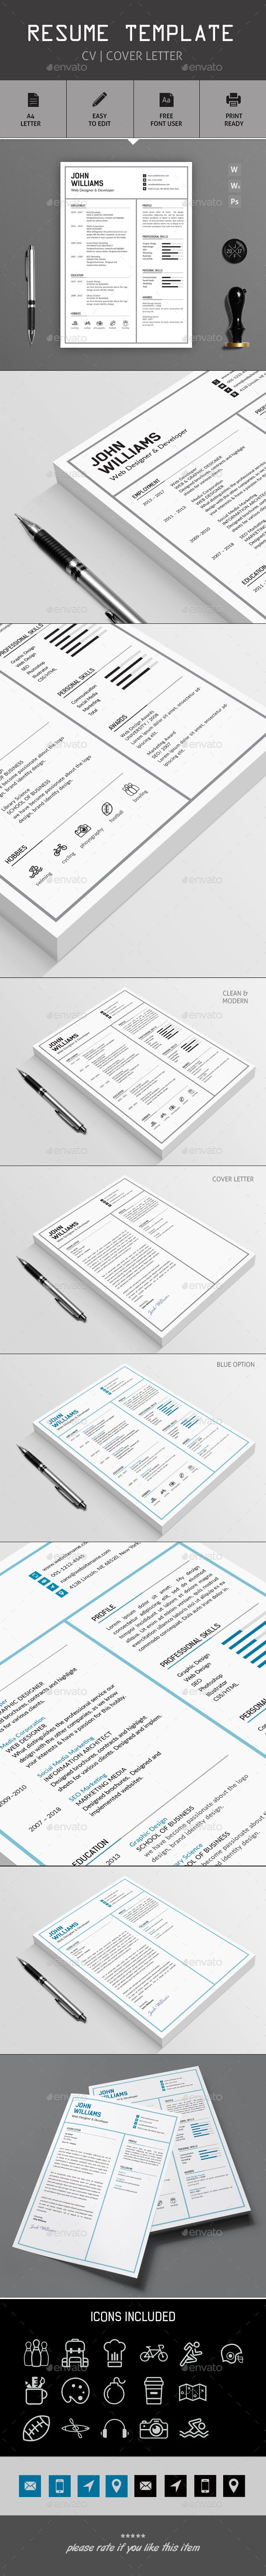 best ideas about resume templates resume resume resume templates